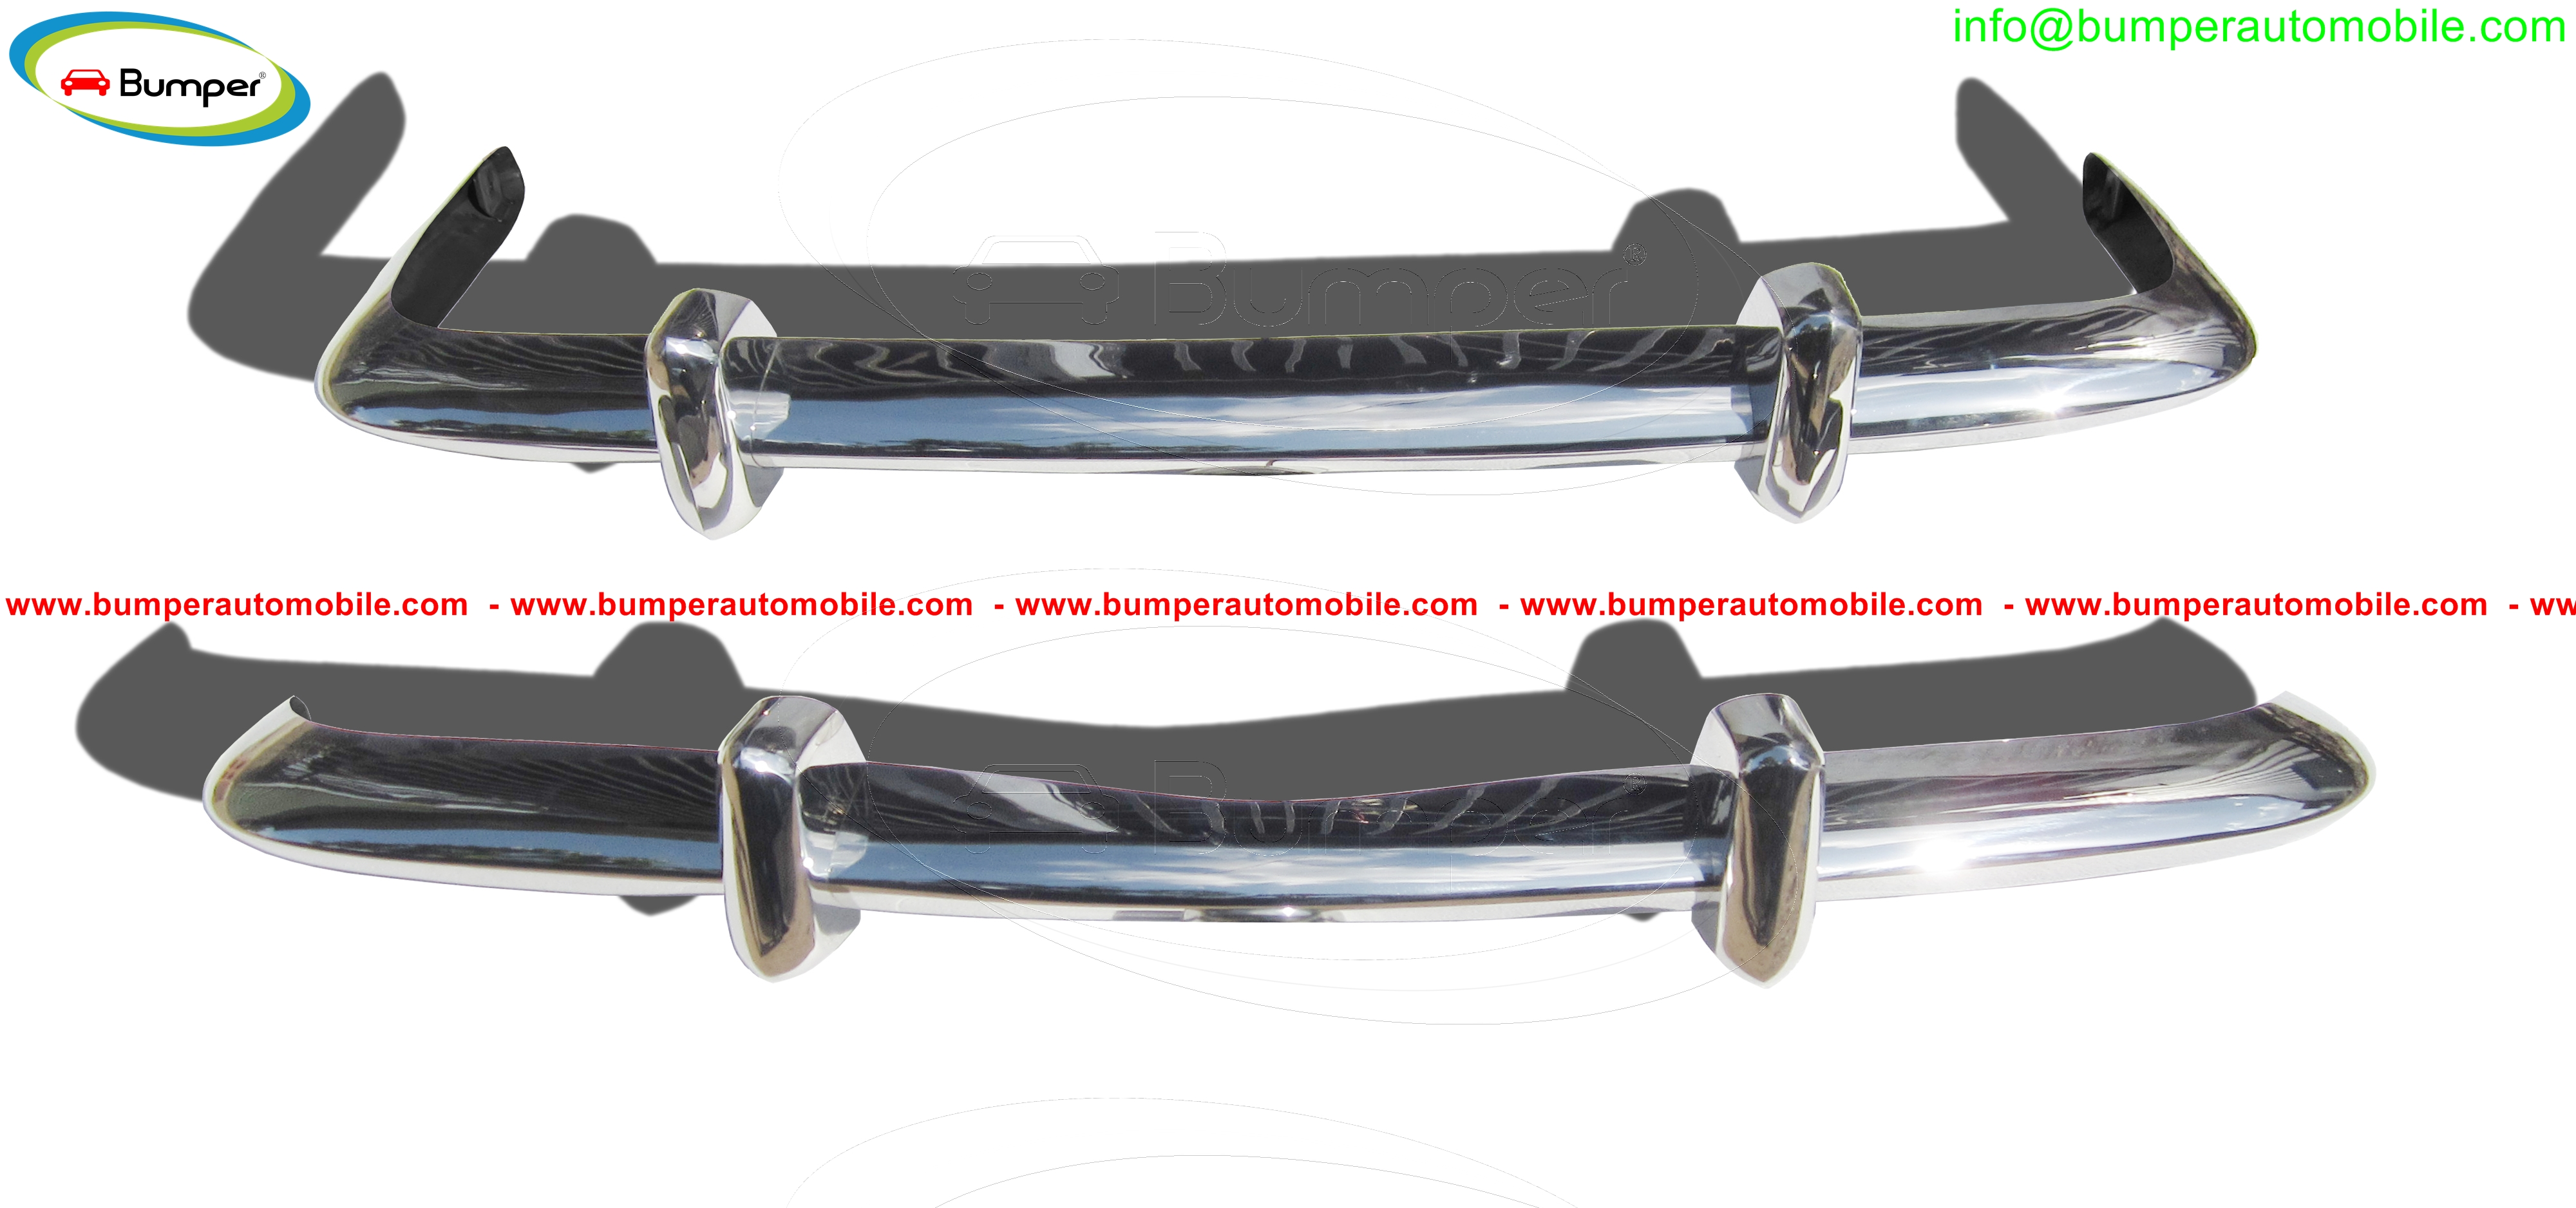 Volkswagen Karmann Ghia Euro style bumpers year (1955-1967),(1967-1969),(1969-1971).